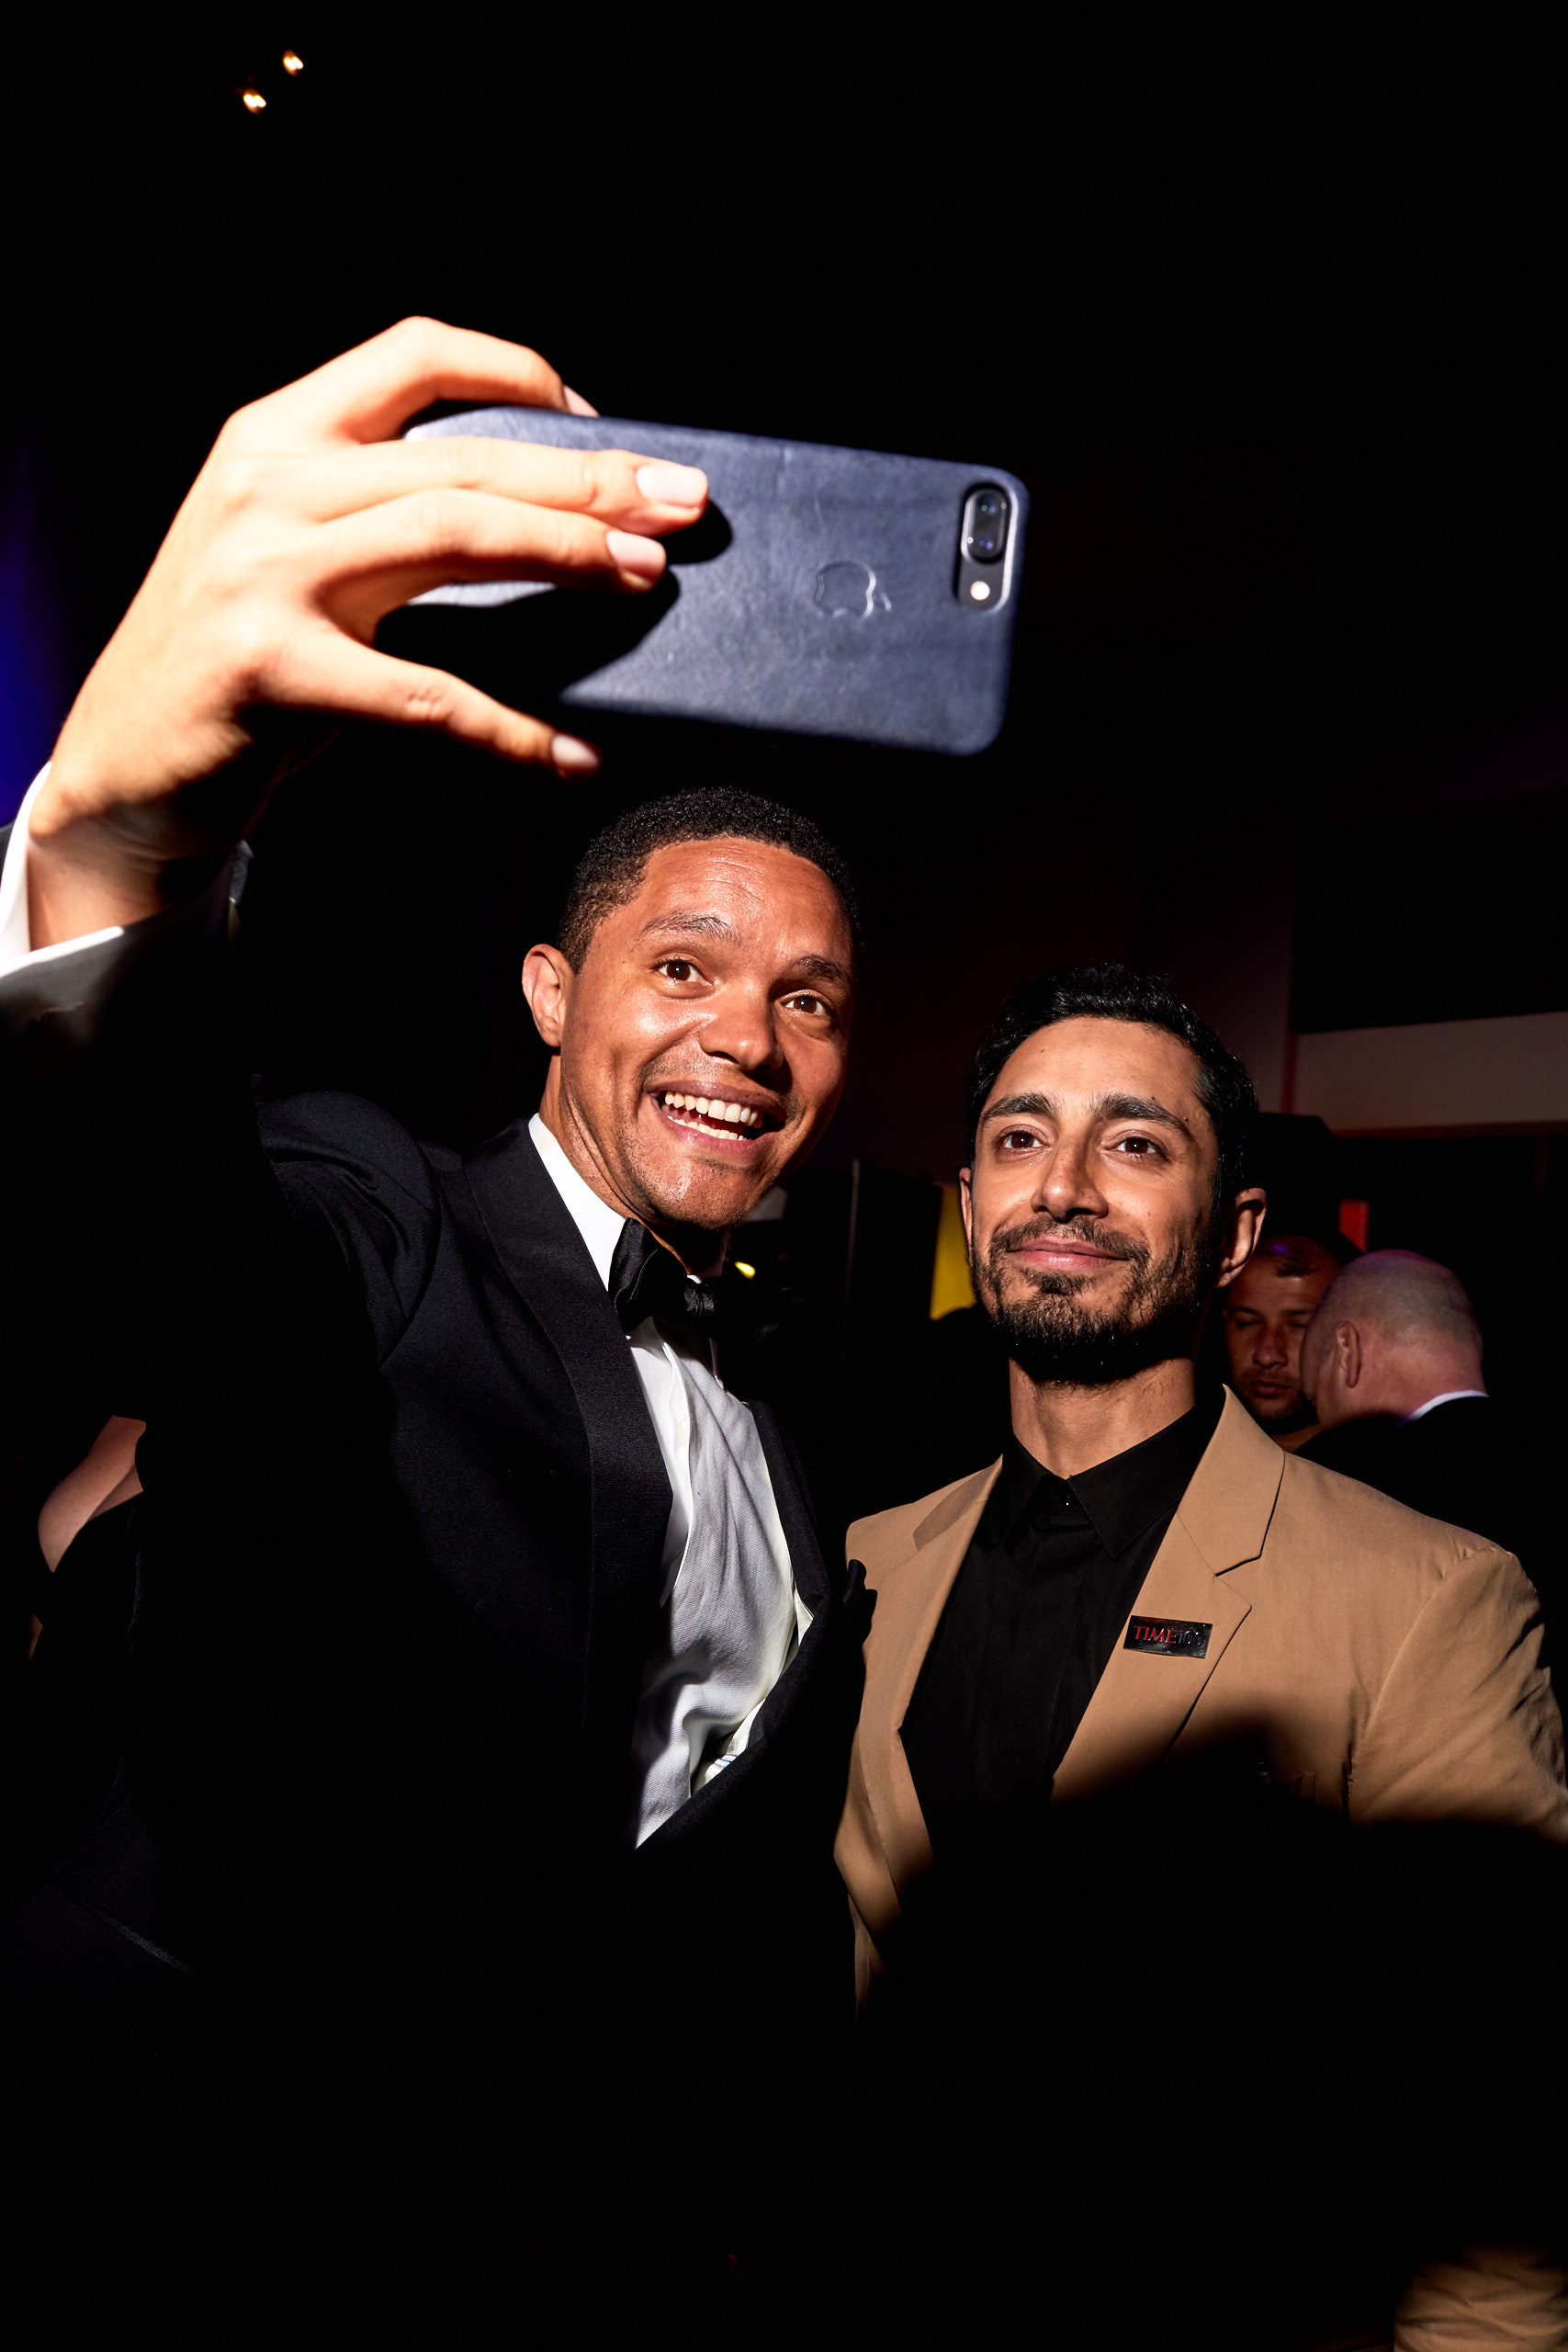 Trevor Noah and Riz Ahmed take a selfie at the Time 100 Gala at Jazz at Lincoln Center on April 25, 2017 in New York City.